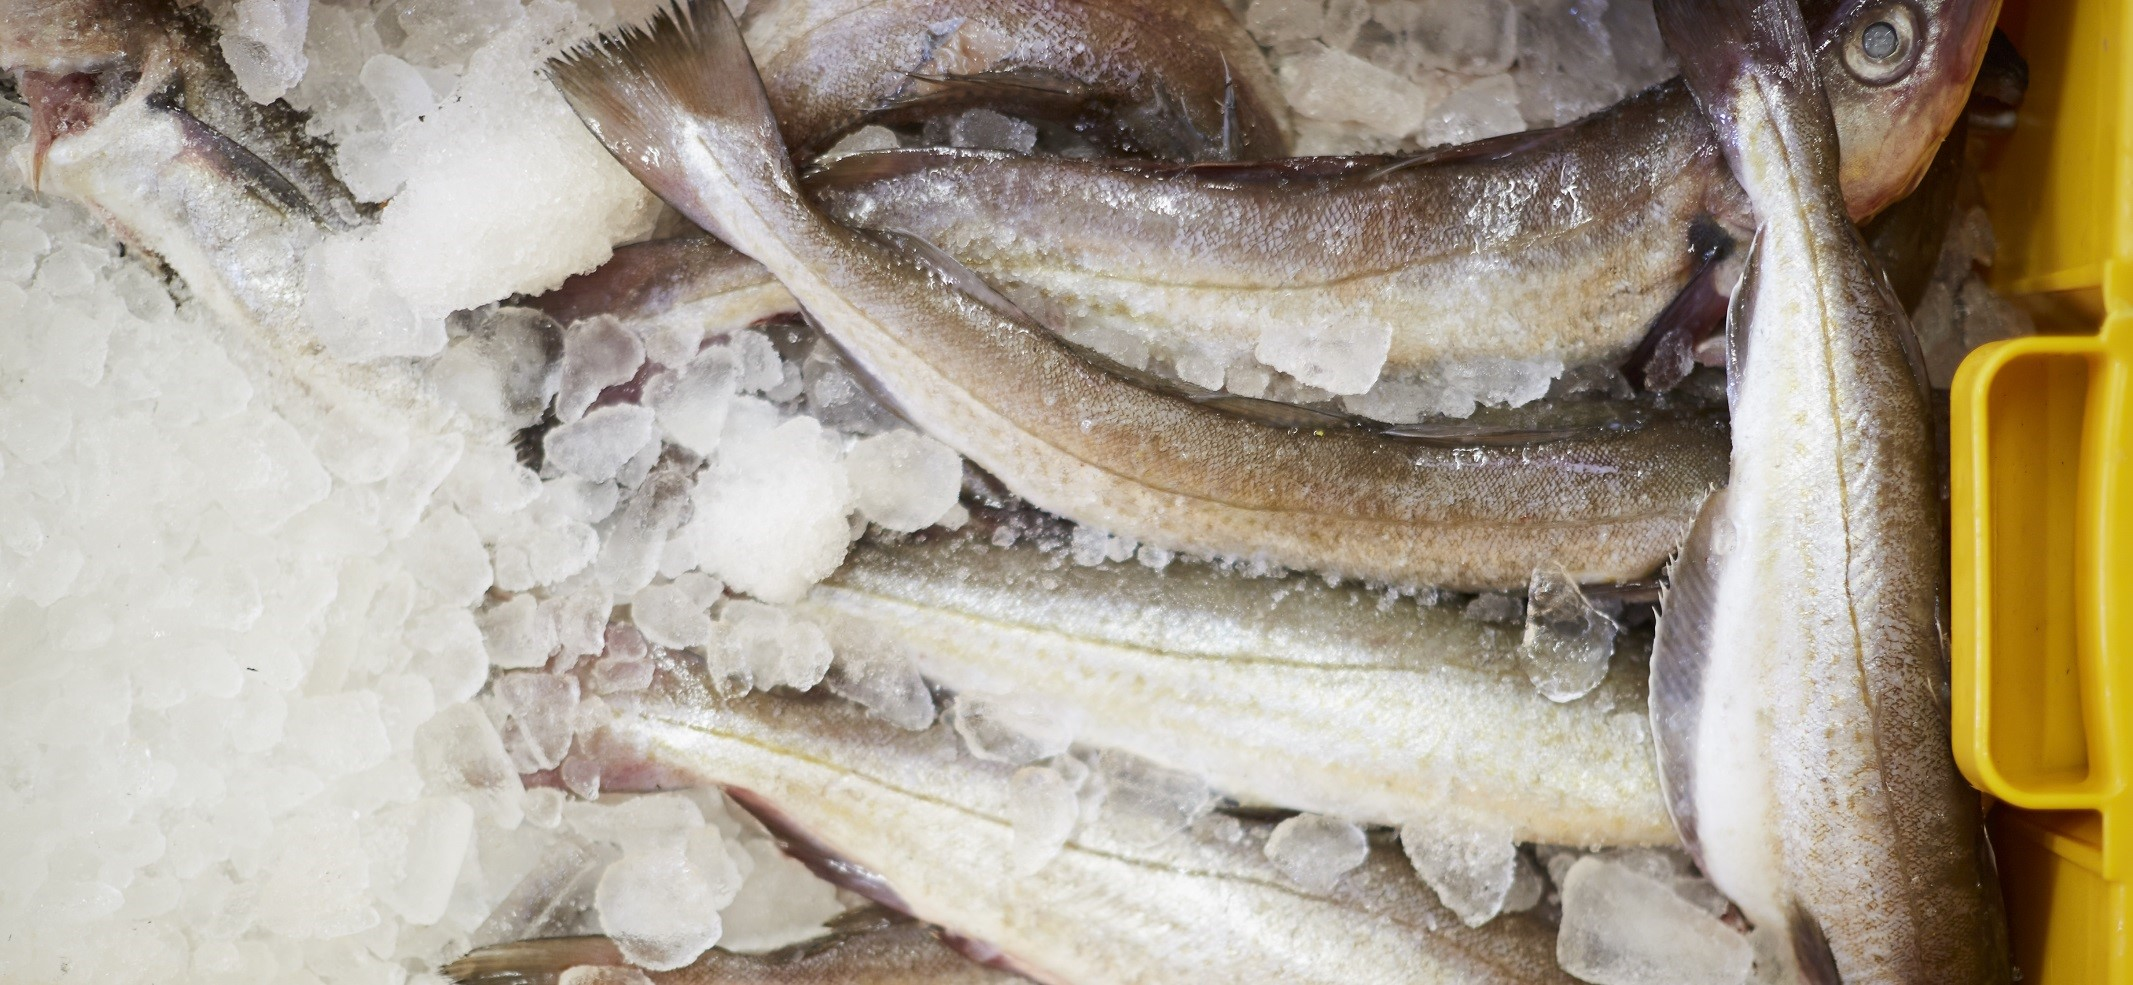 Fish & seafood outlook